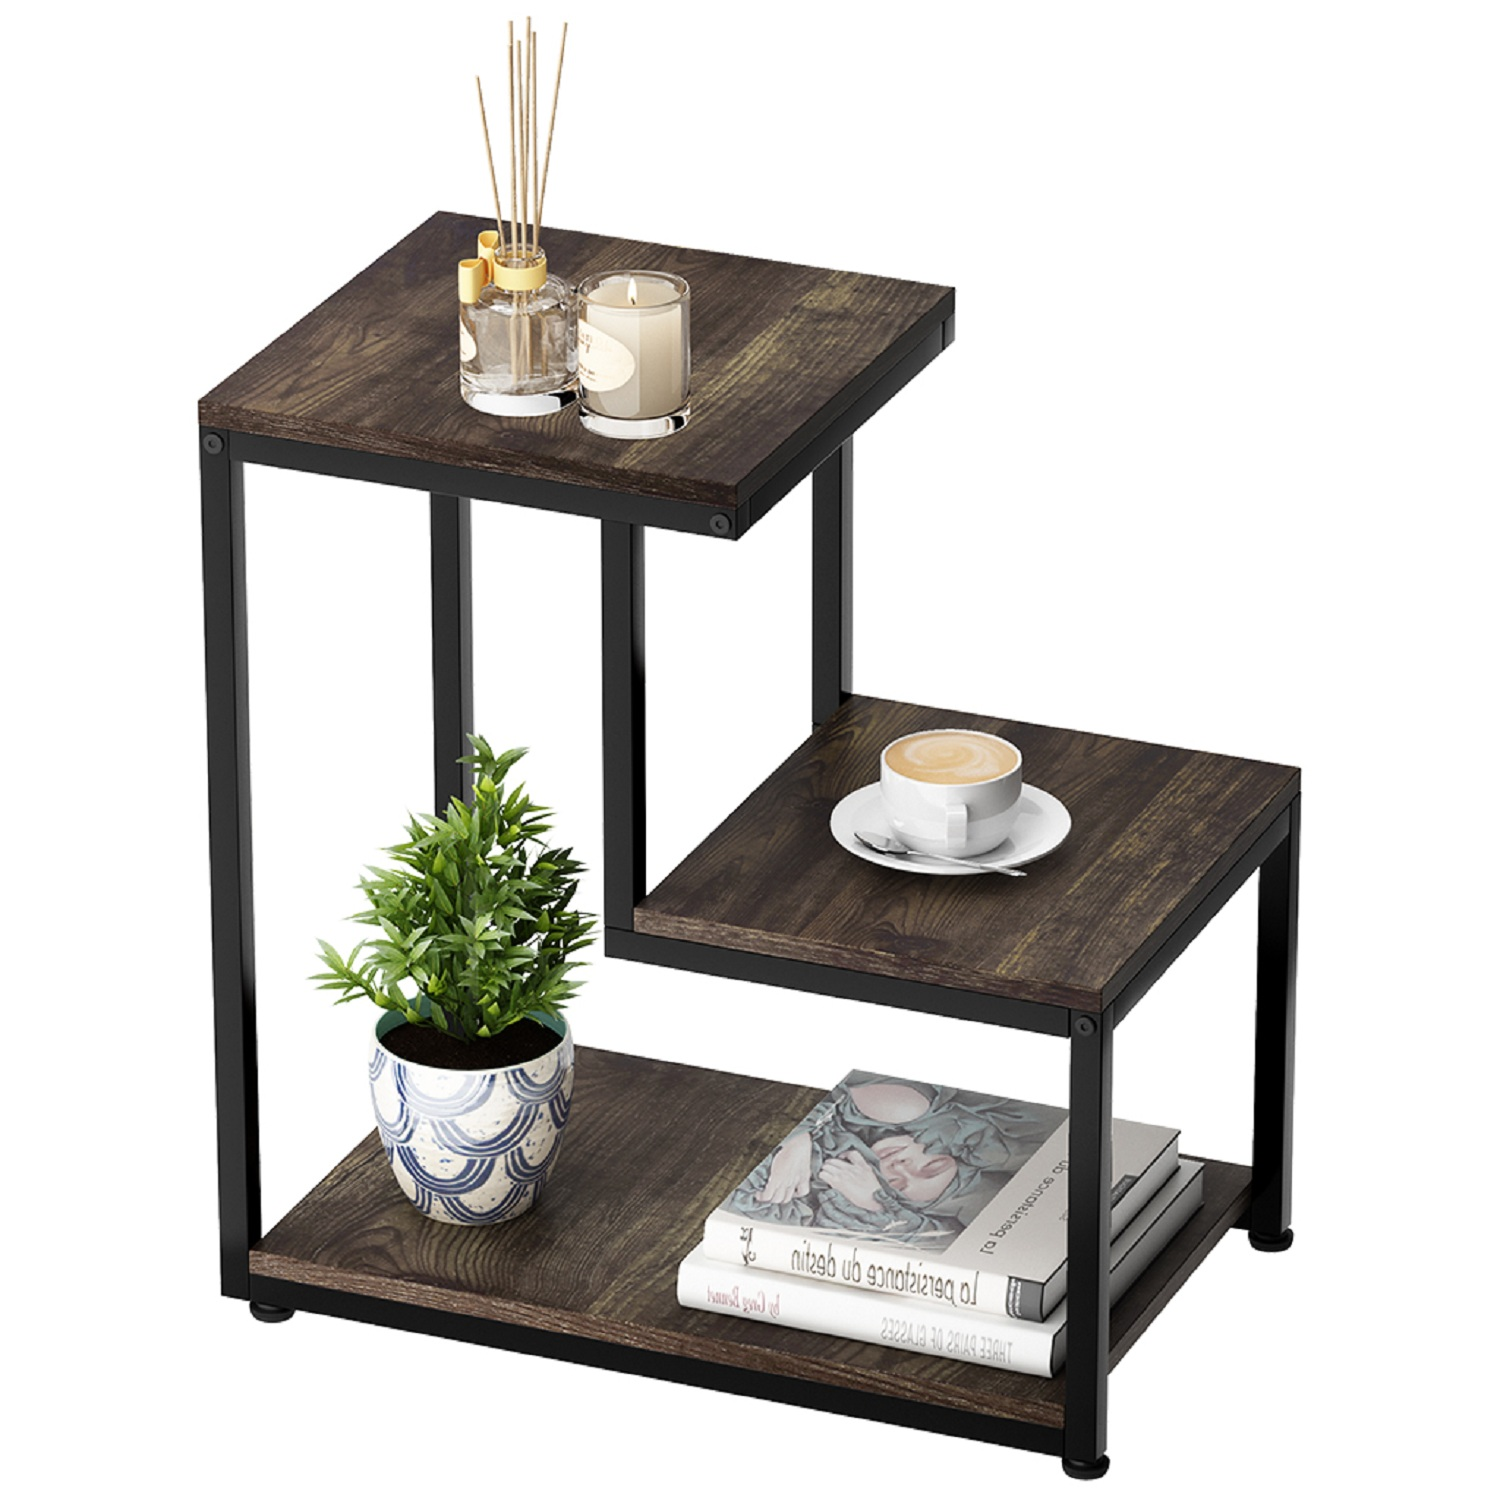 3 Size Simple Style Iron Double Sofa Accent Table End Table Wood Grain NEW